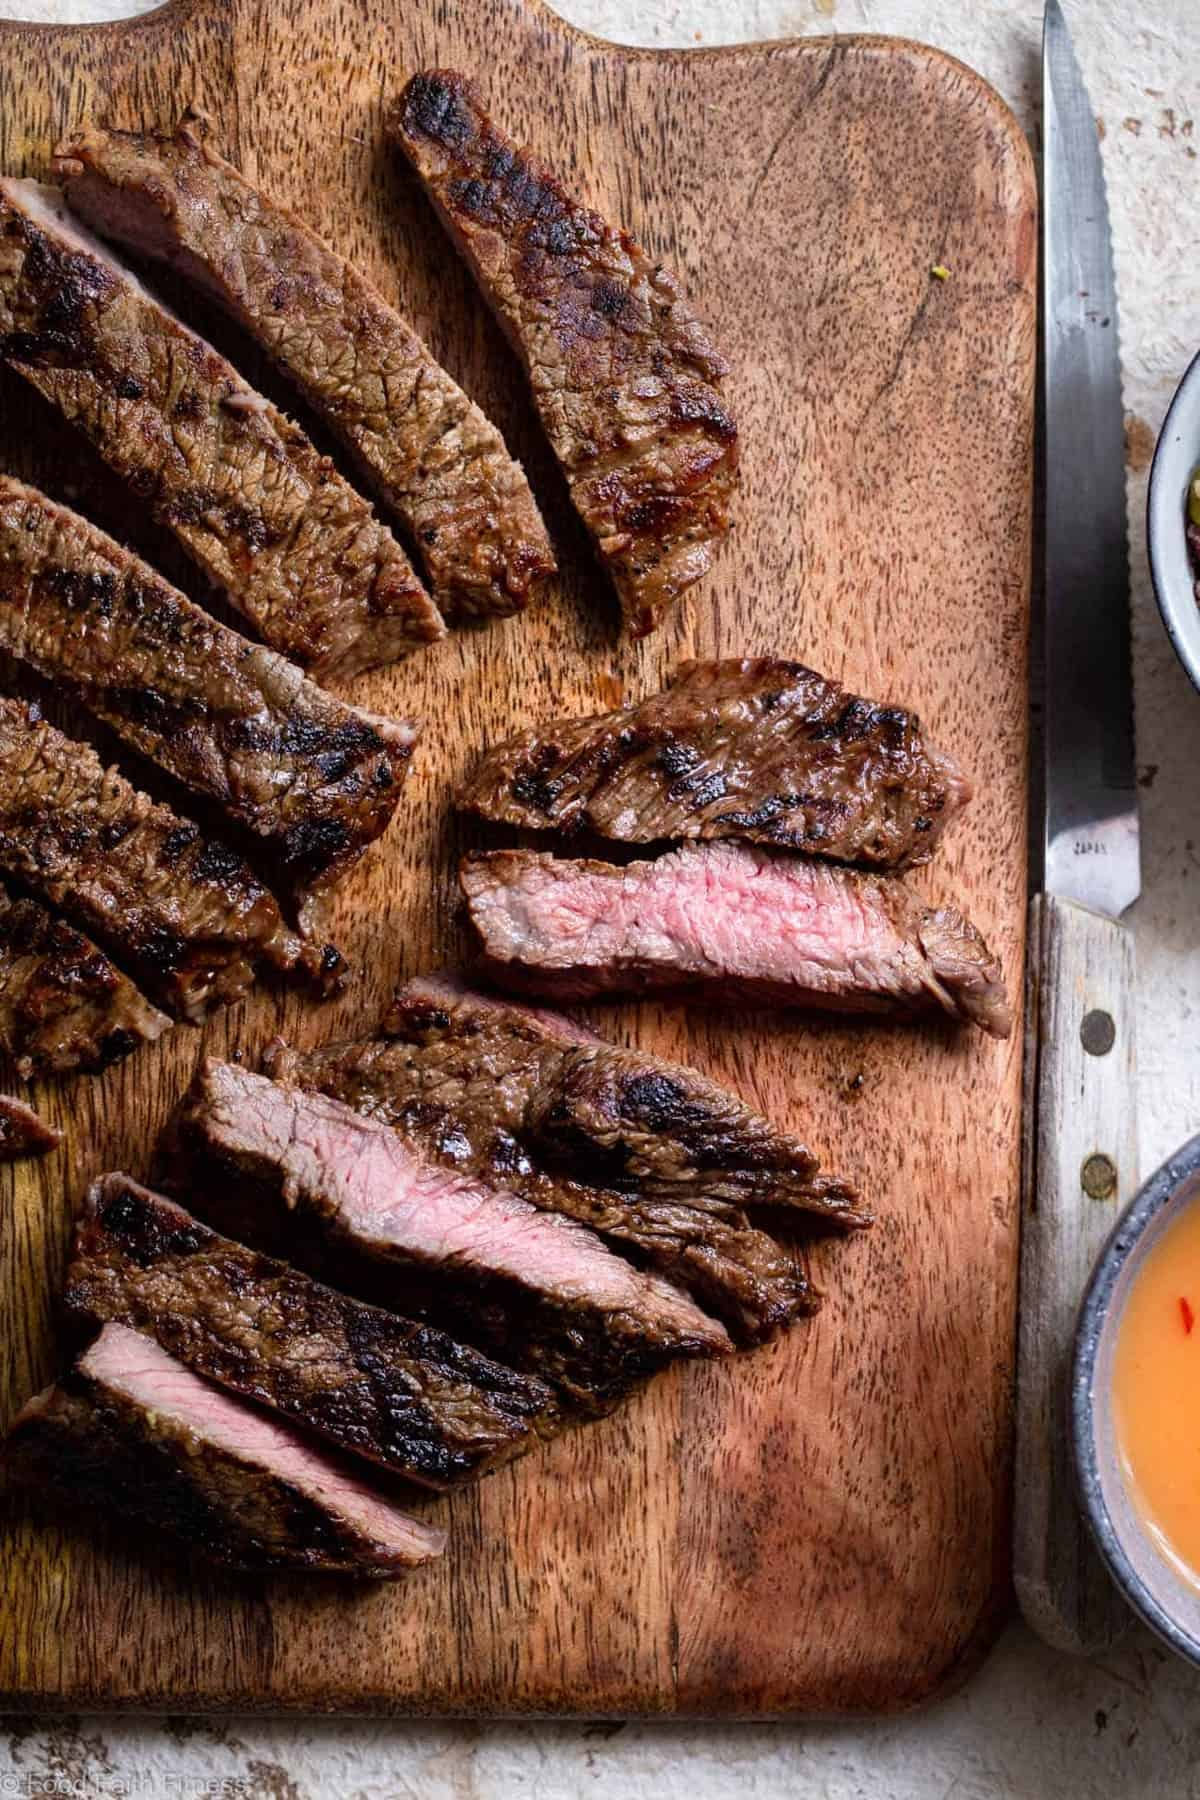 Sliced steak on a cutting board for Spicy Thai beef salad